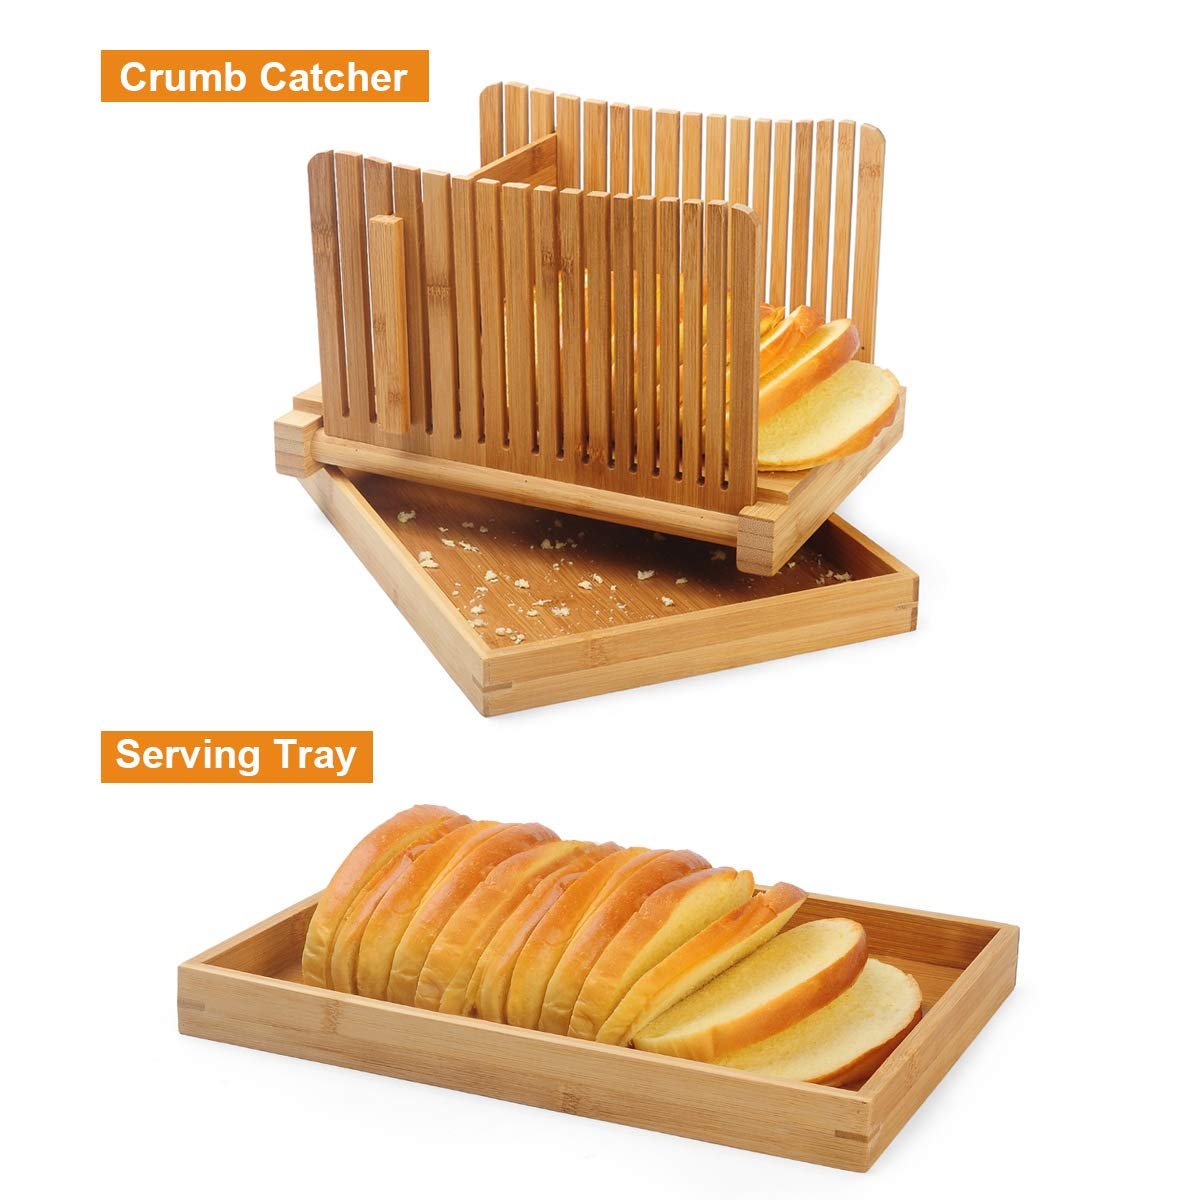 AKUNSZ Bamboo Bread Slicer Guide with Crumb Catcher, Adjustable Bread Loaf Slicer Foldable Bread Cutter Slicer - Thickness Adjustable 1/4'',3/8'',1/2''(Assembled Size 5.5''x9.3''x7'') by AKUNSZ (Image #4)